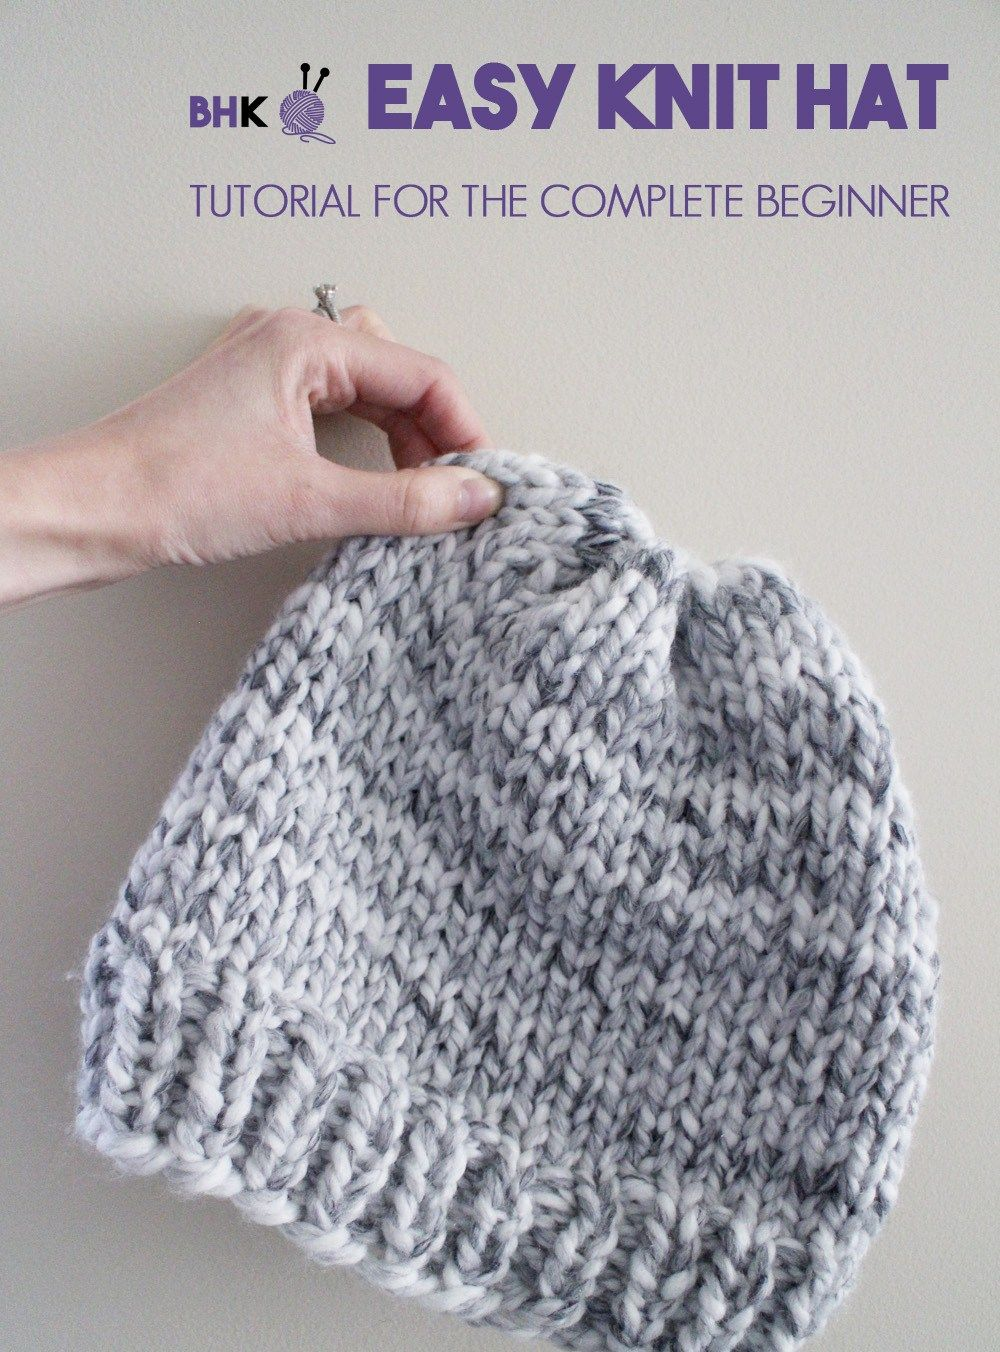 Easy Knit Hat | Knit hats, Easy and Circular needles